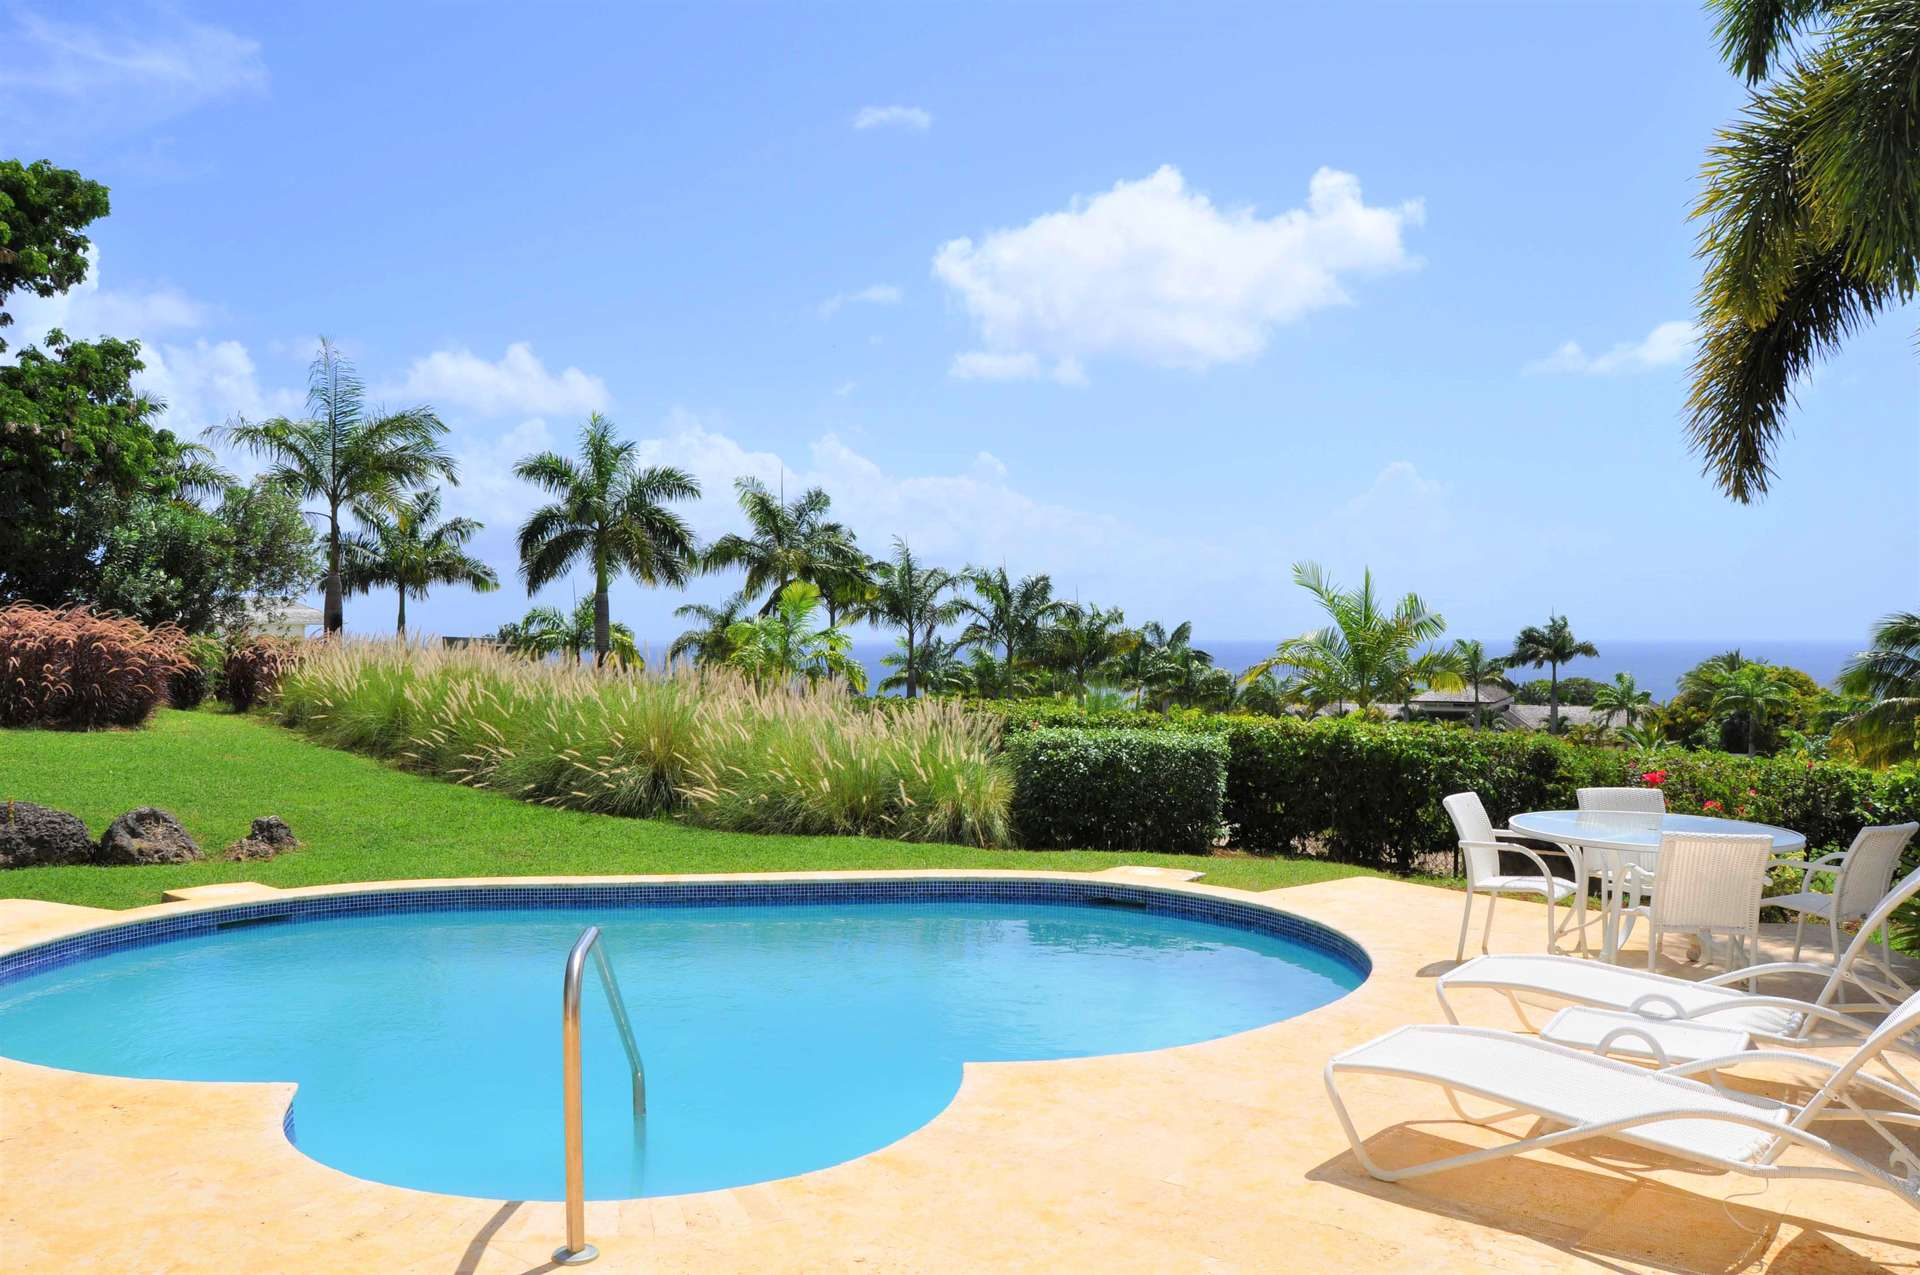 Luxury villa rentals caribbean - Barbados - St james - Royal westmoreland golf resort - Royal Villa 3 - Image 1/10